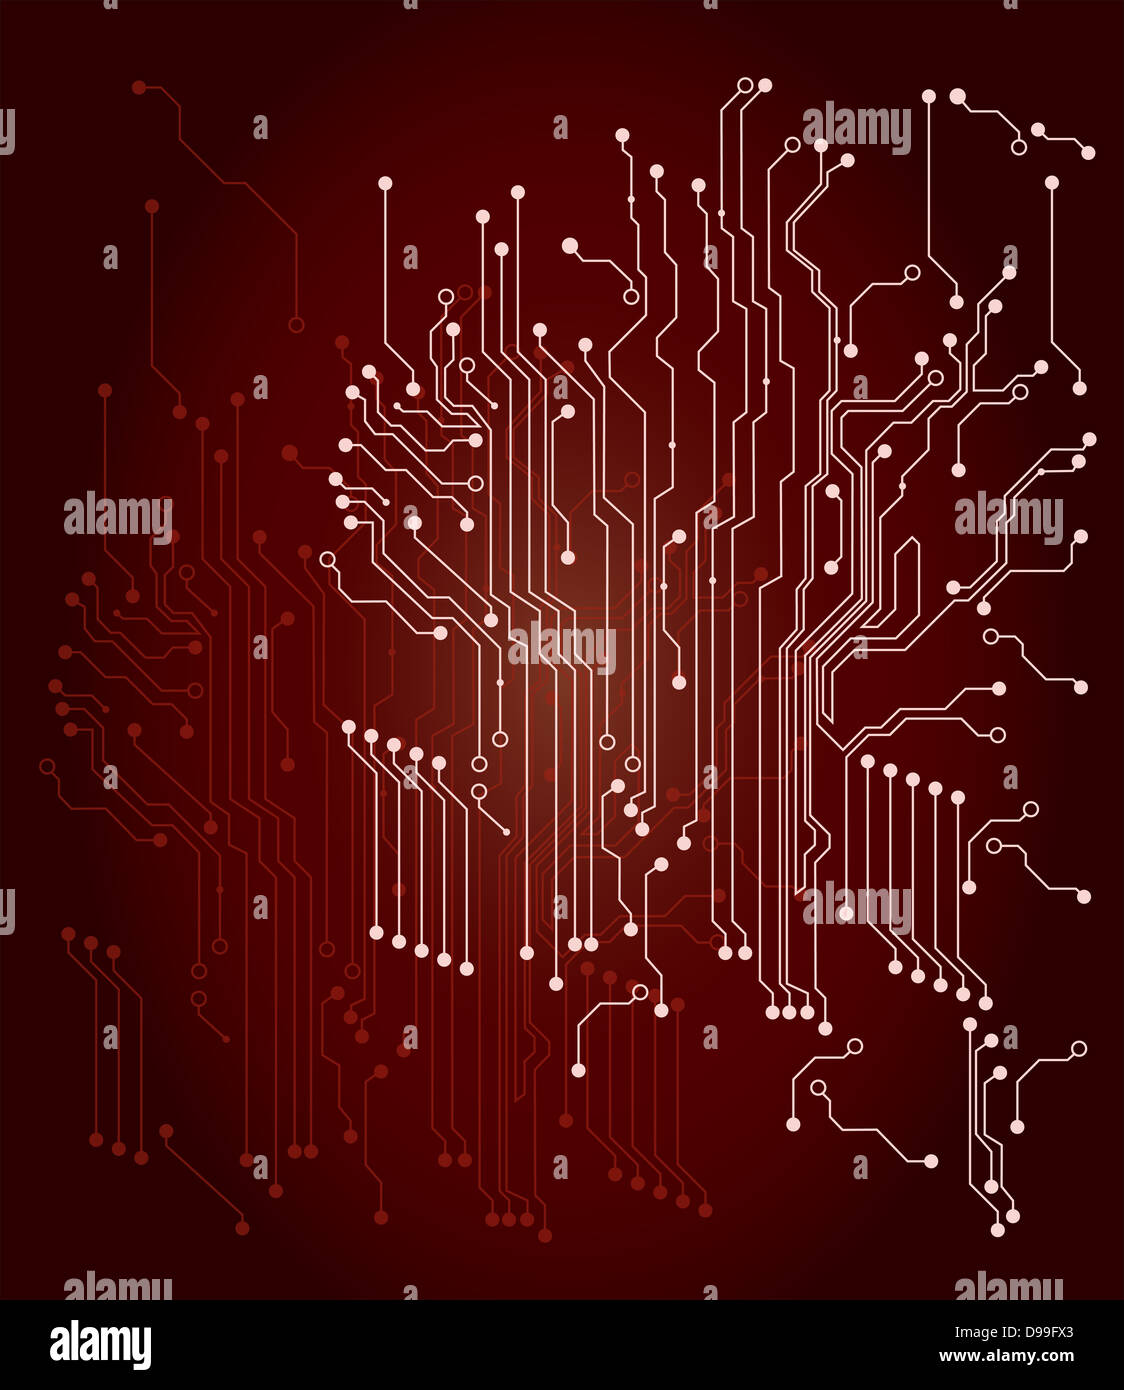 Printed Circuit Boards Red Not Lossing Wiring Diagram Pics Photos Desktop Wallpapers Board Pictures At Background Technology Stock Rh Alamy Com Wallpaper